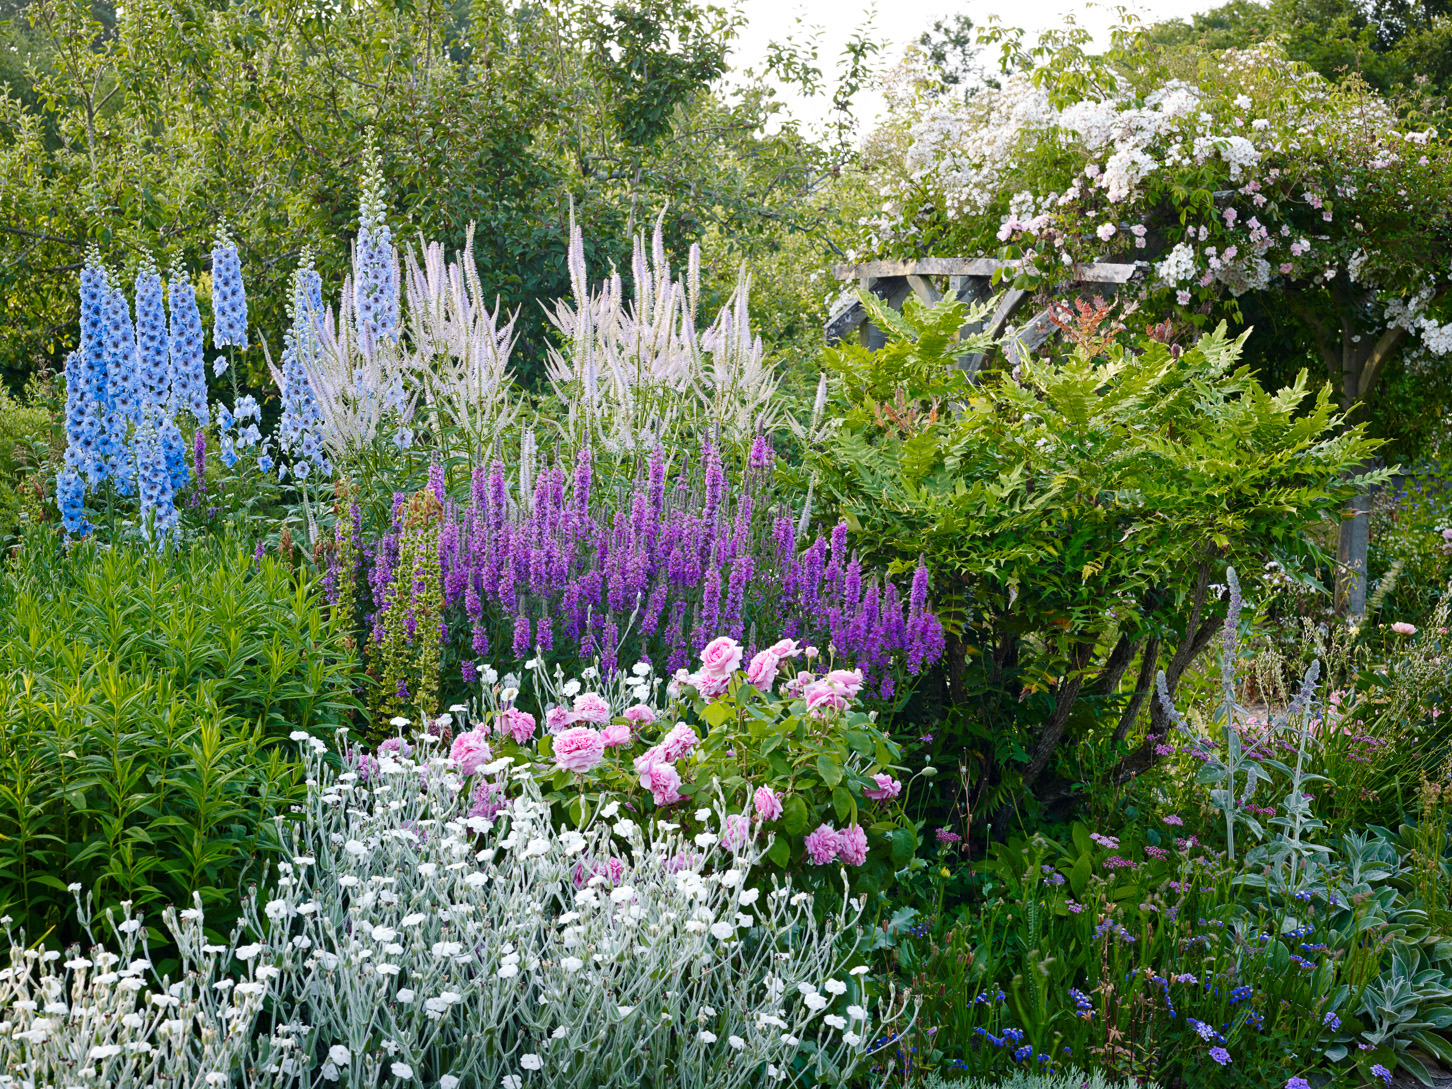 RHS Garden Rosemoor - The Cottage Garden